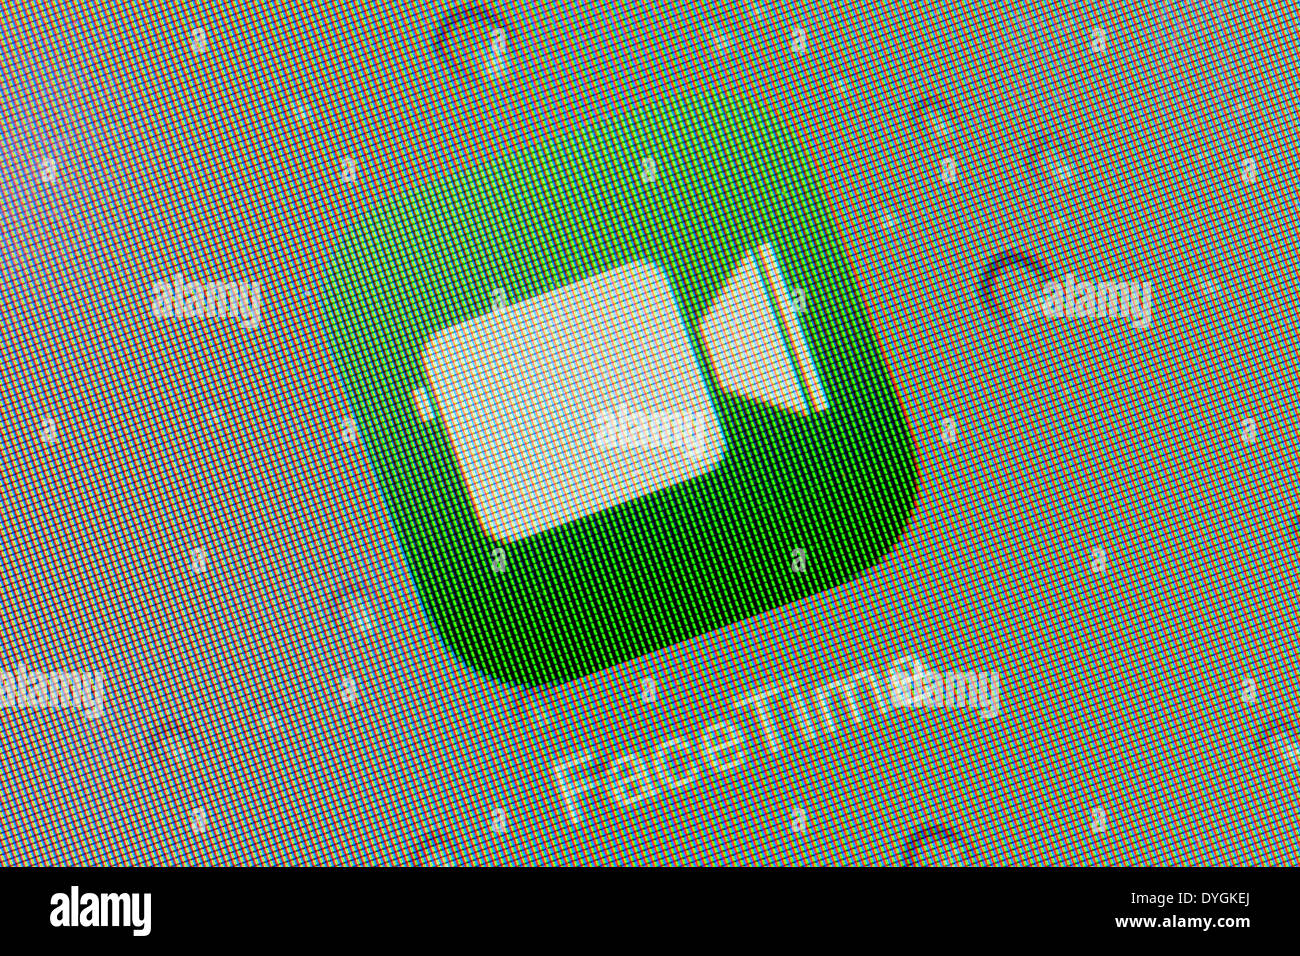 Apple facetime app logo icon on iPad apps logos icons - Stock Image